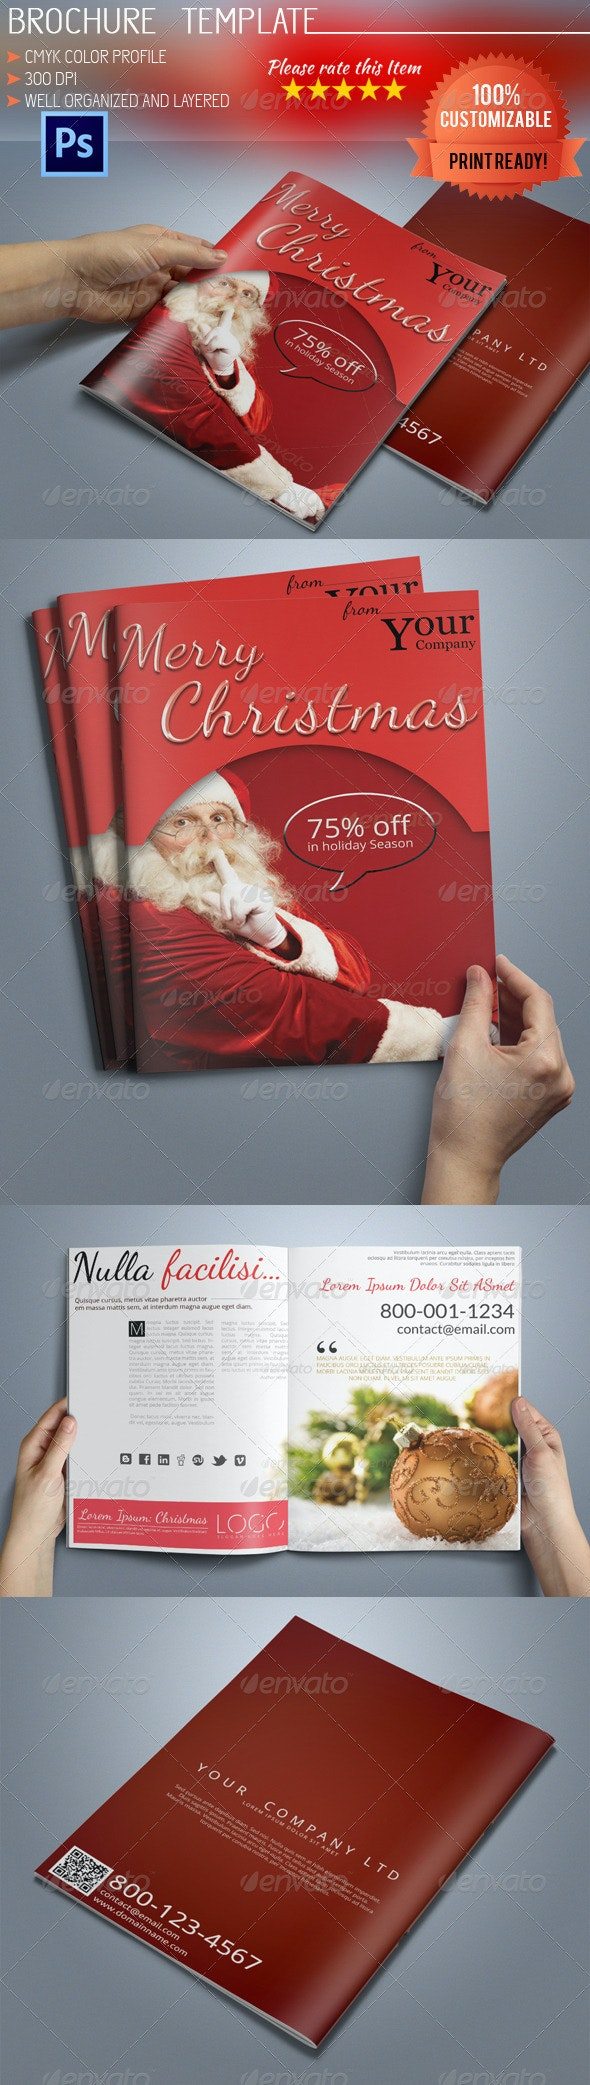 A5 Christmas Brochure - Corporate Brochures